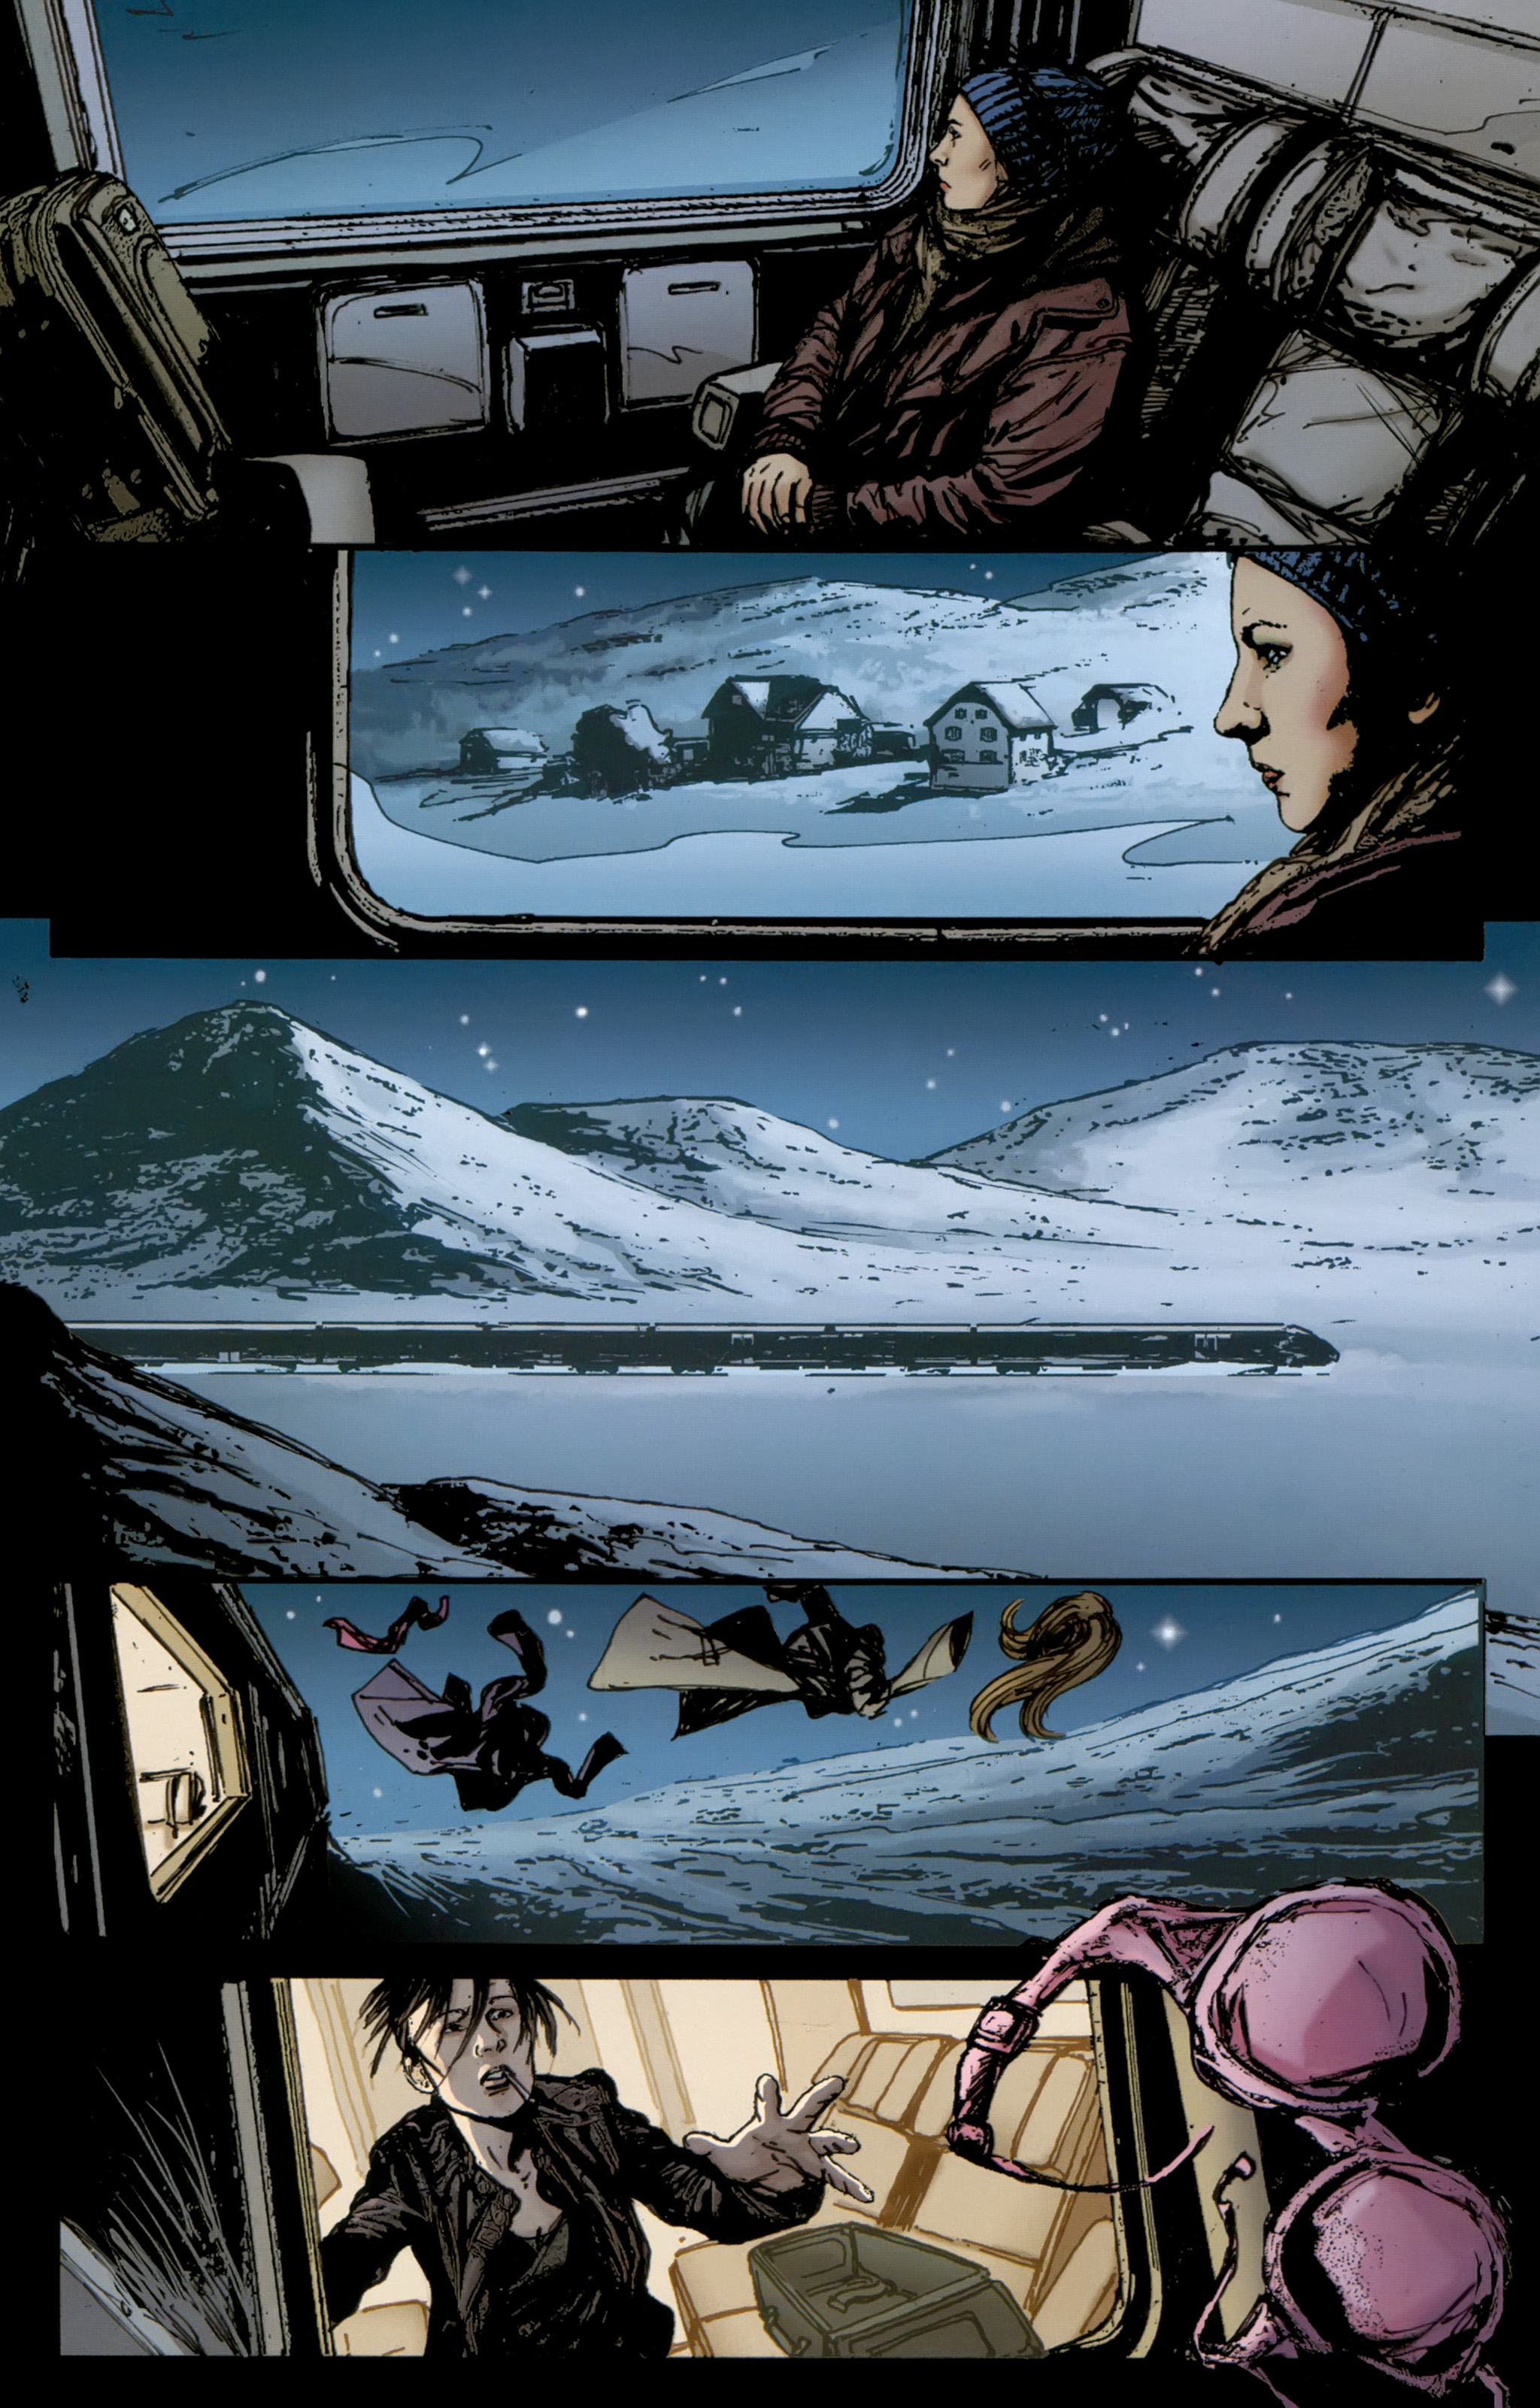 Read online The Girl With the Dragon Tattoo comic -  Issue # TPB 2 - 152